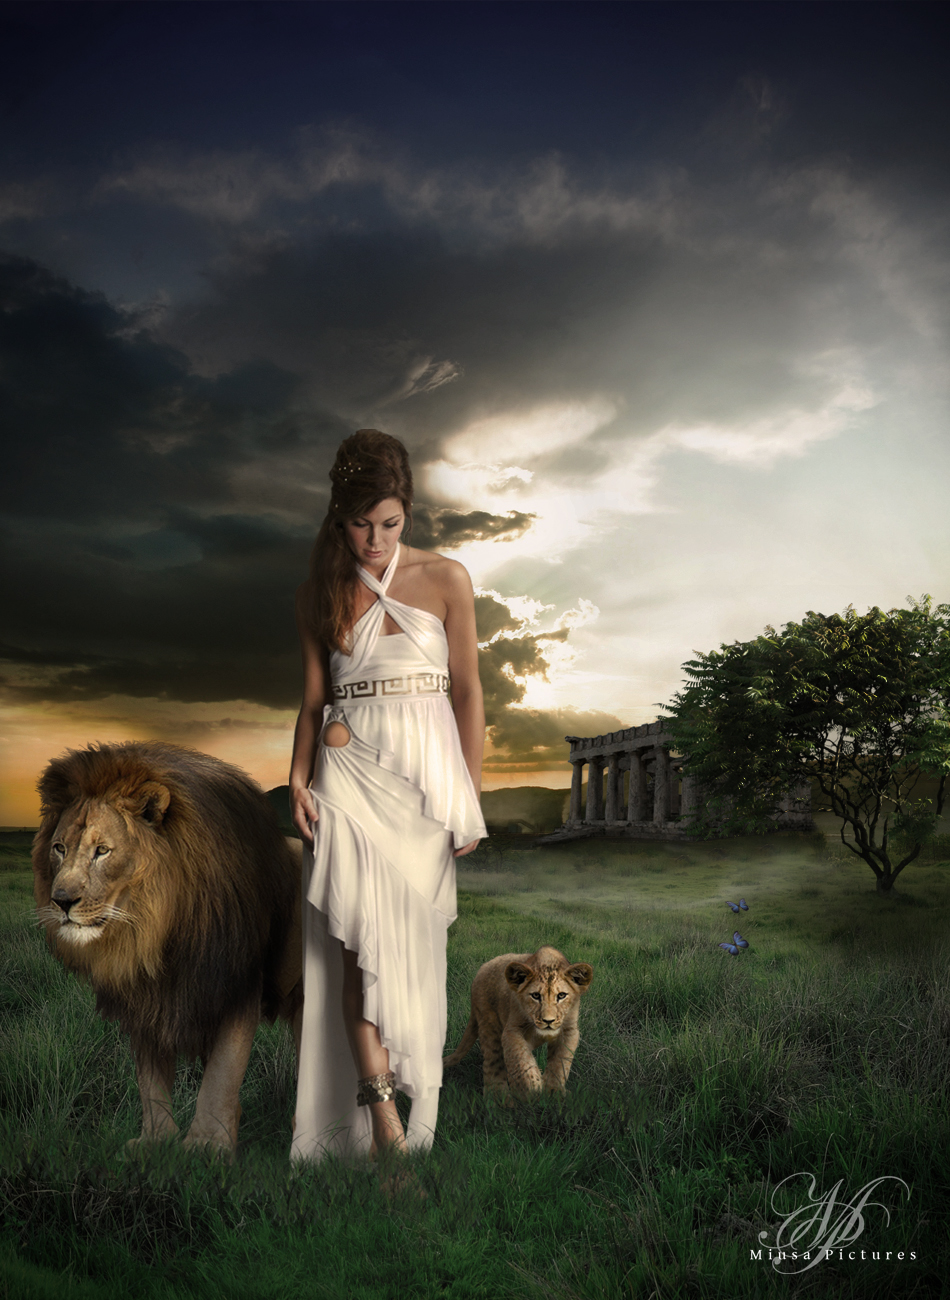 Walking with Lions by MiusaPictures